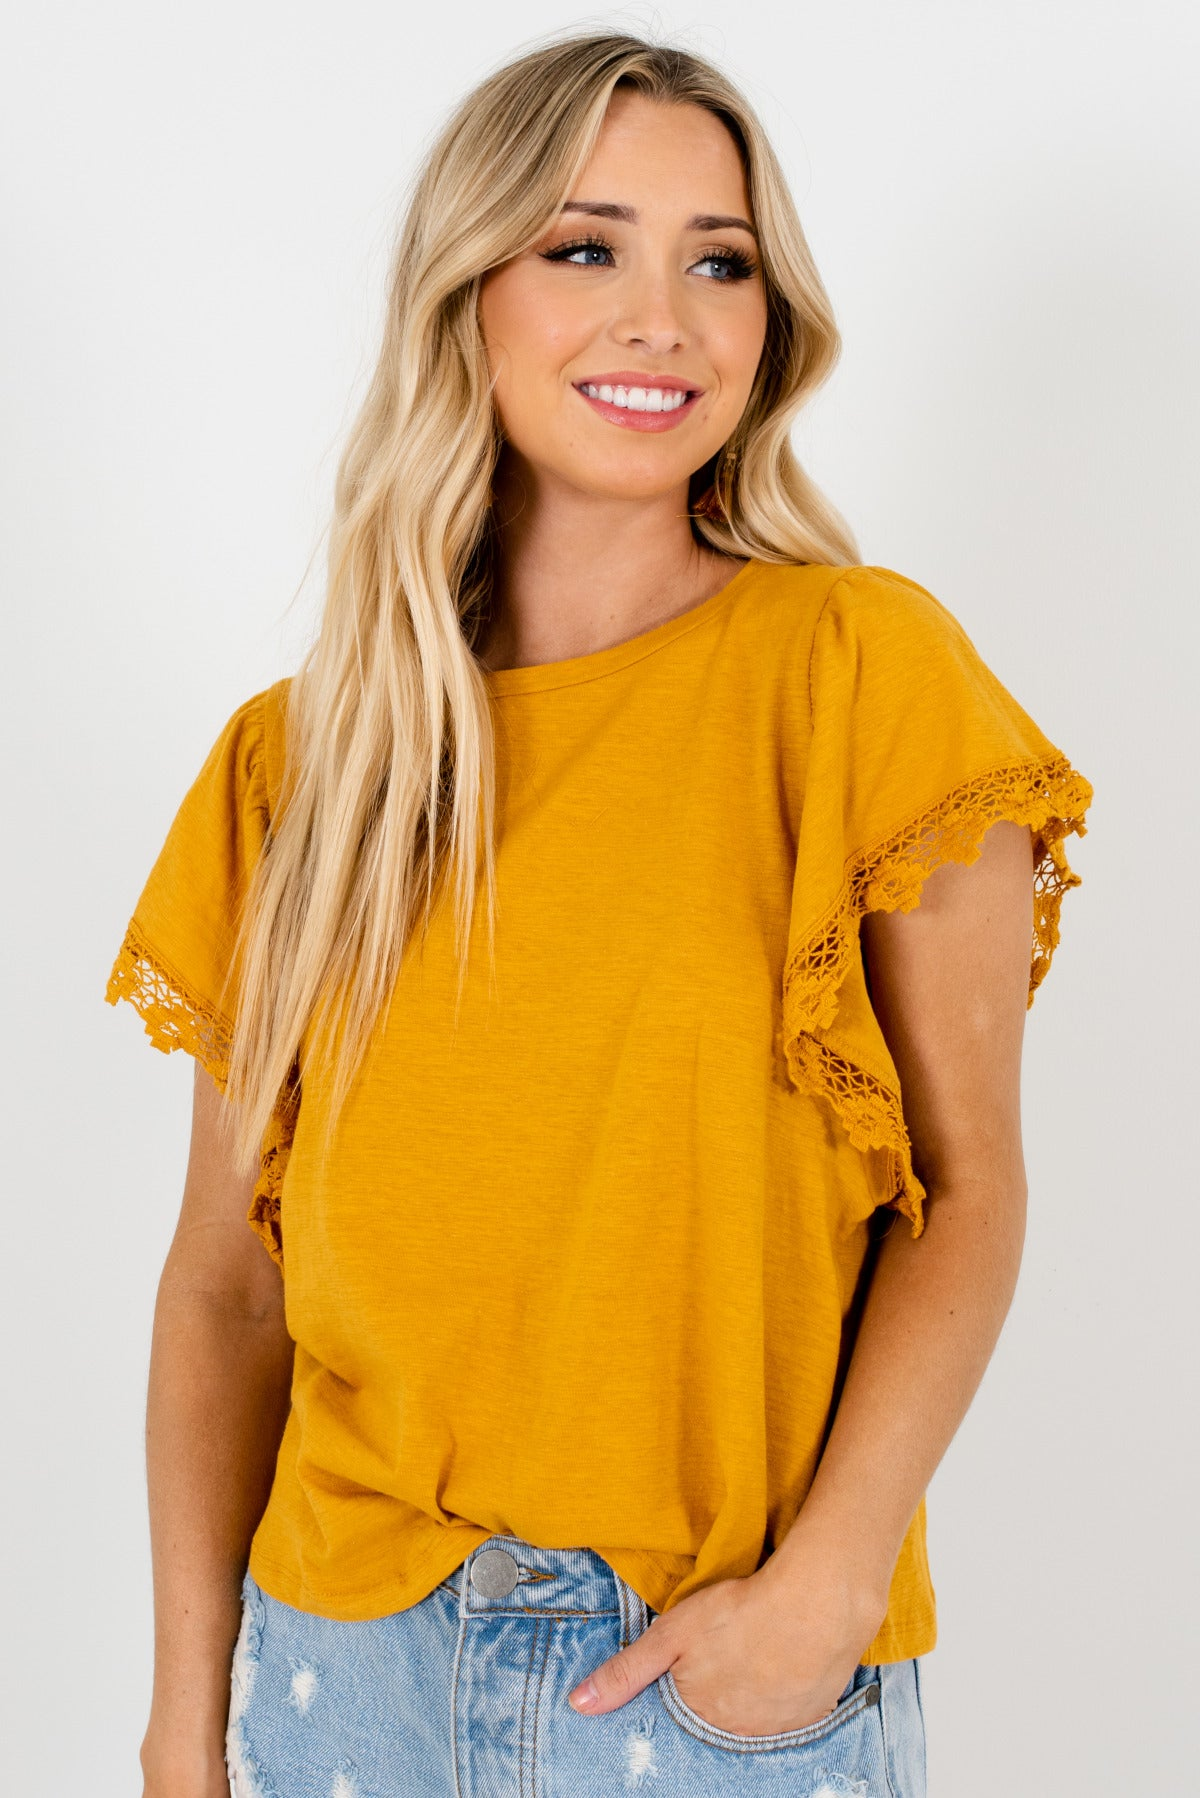 Mustard Yellow Crochet Lace Sleeve Boutique Tops for Women